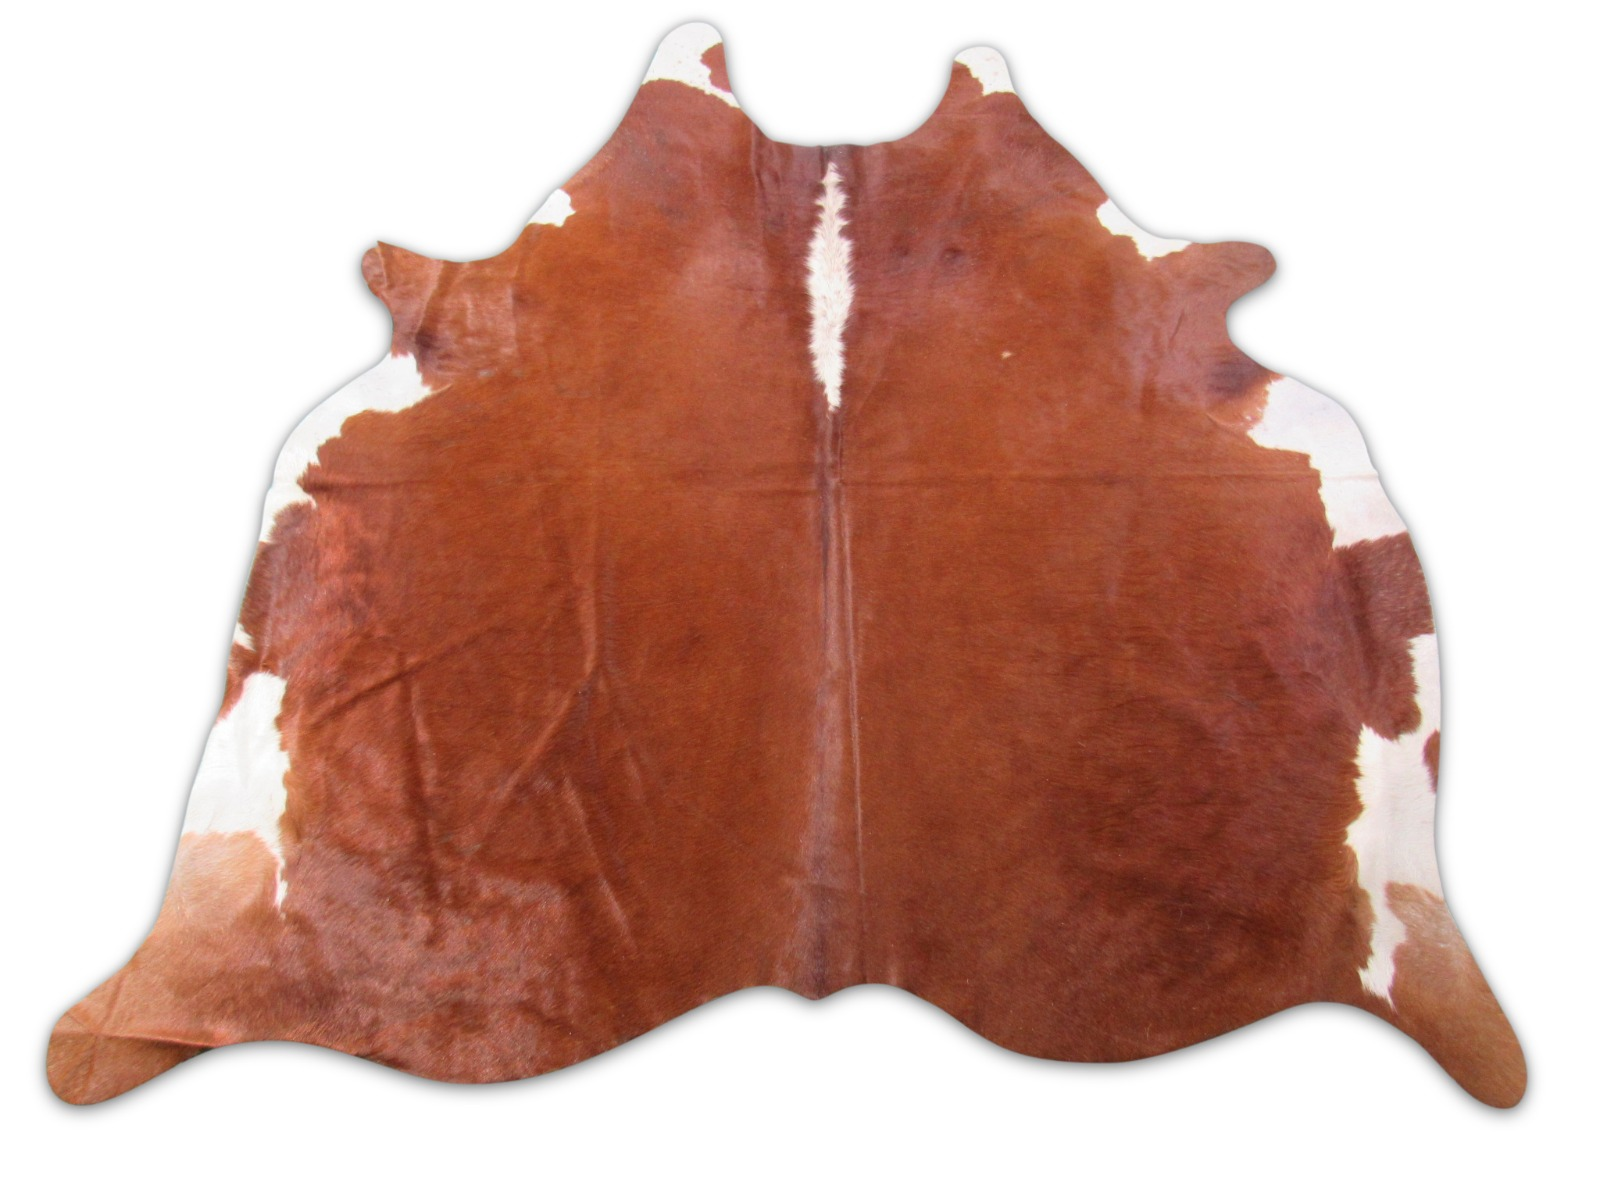 A-1466 Hereford Caramel And White Cowhide Rug Size: 7' X 6 1/4'